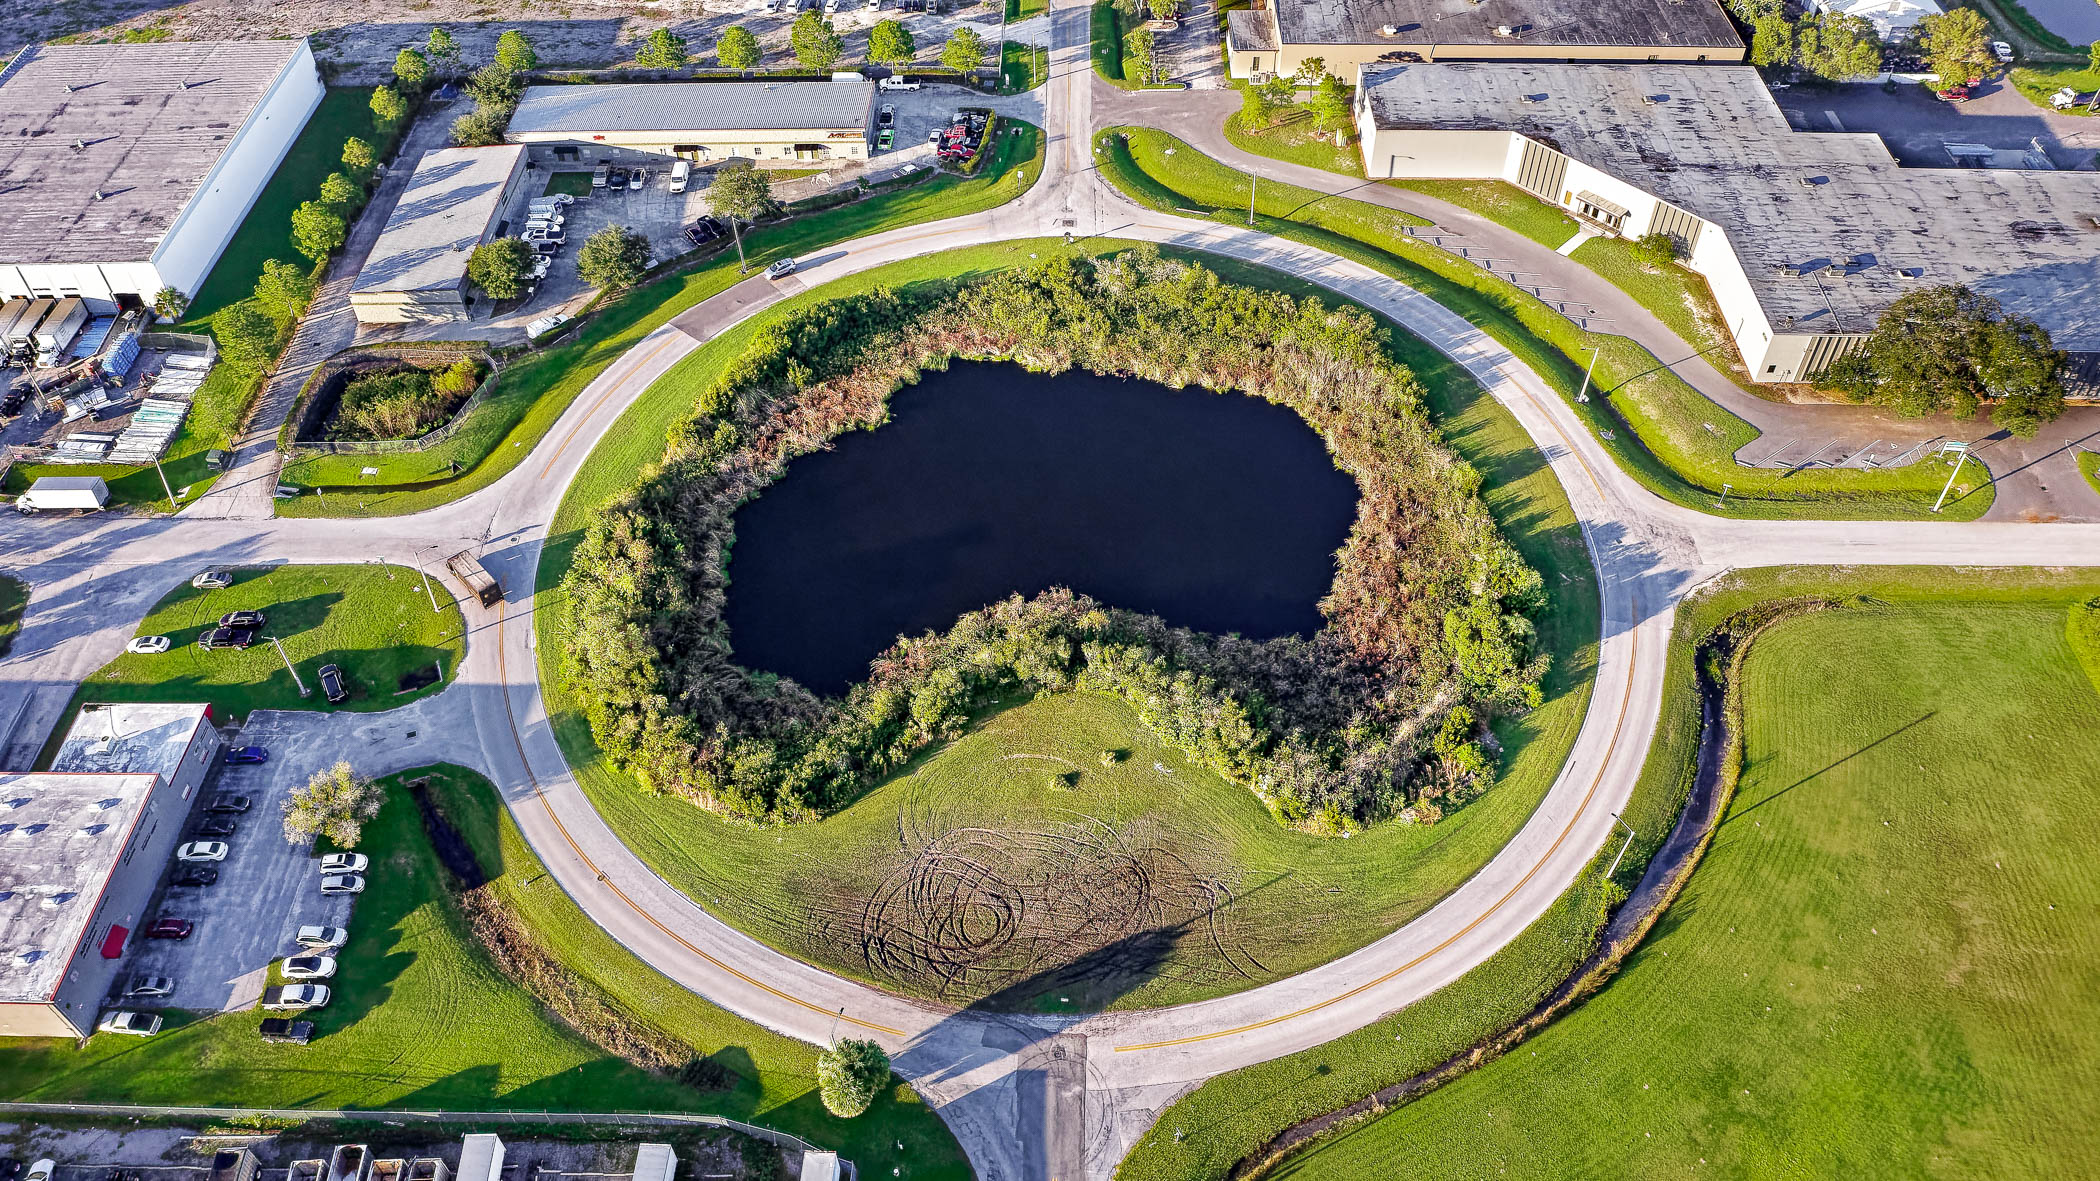 Tampa Traffic Circle by Drone Photographer in Atlanta